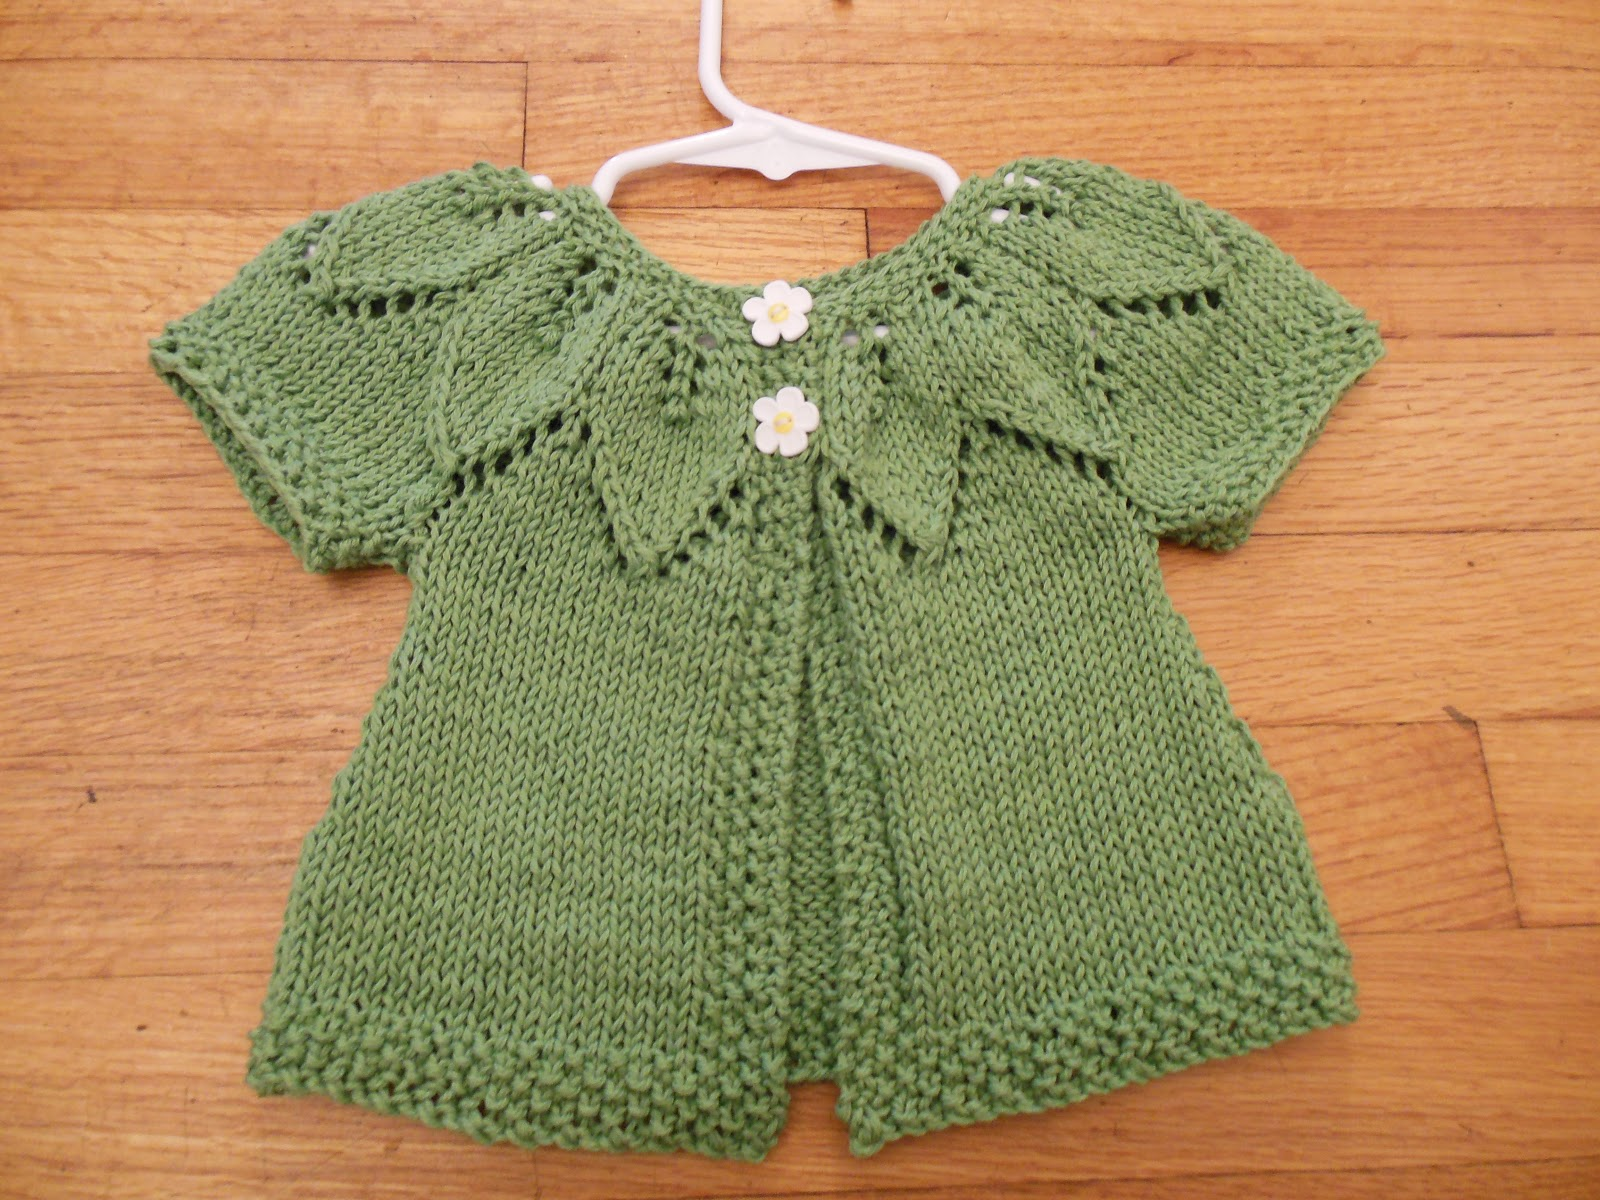 Knitting Patterns For Baby Vests : Natural State Knitting: Baby Leaf Sweater